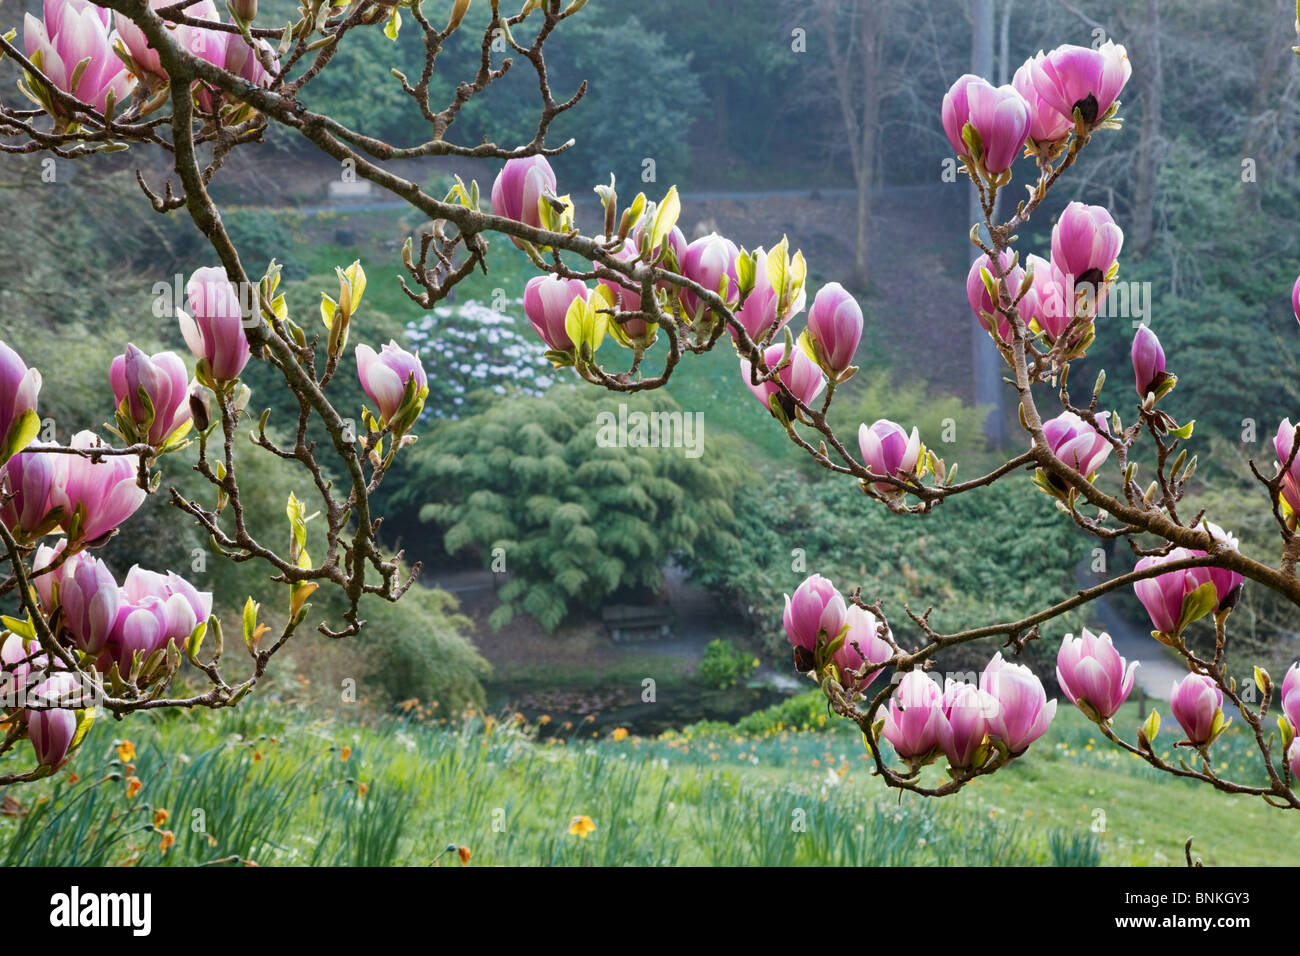 Magnolia Tree Stock Photos & Magnolia Tree Stock Images - Alamy